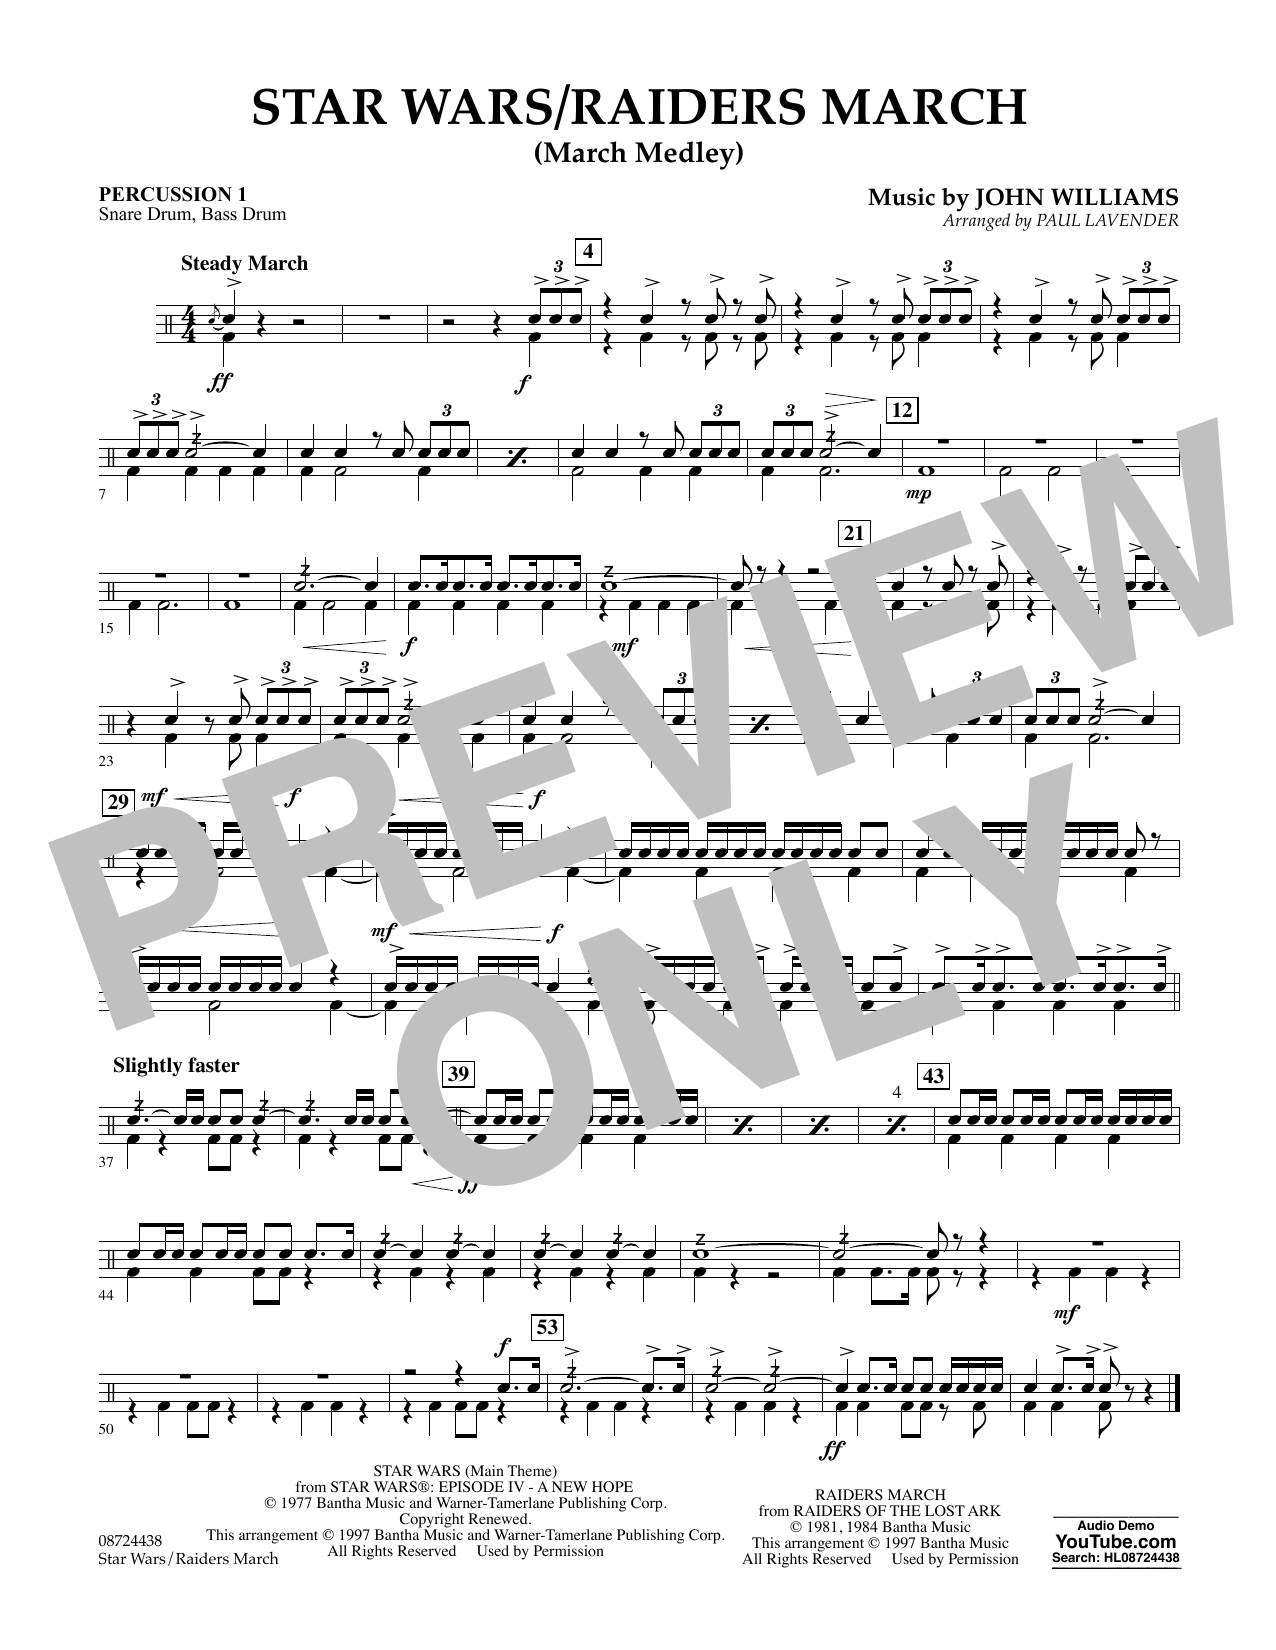 Star Wars/Raiders March - Percussion 1 (Concert Band)